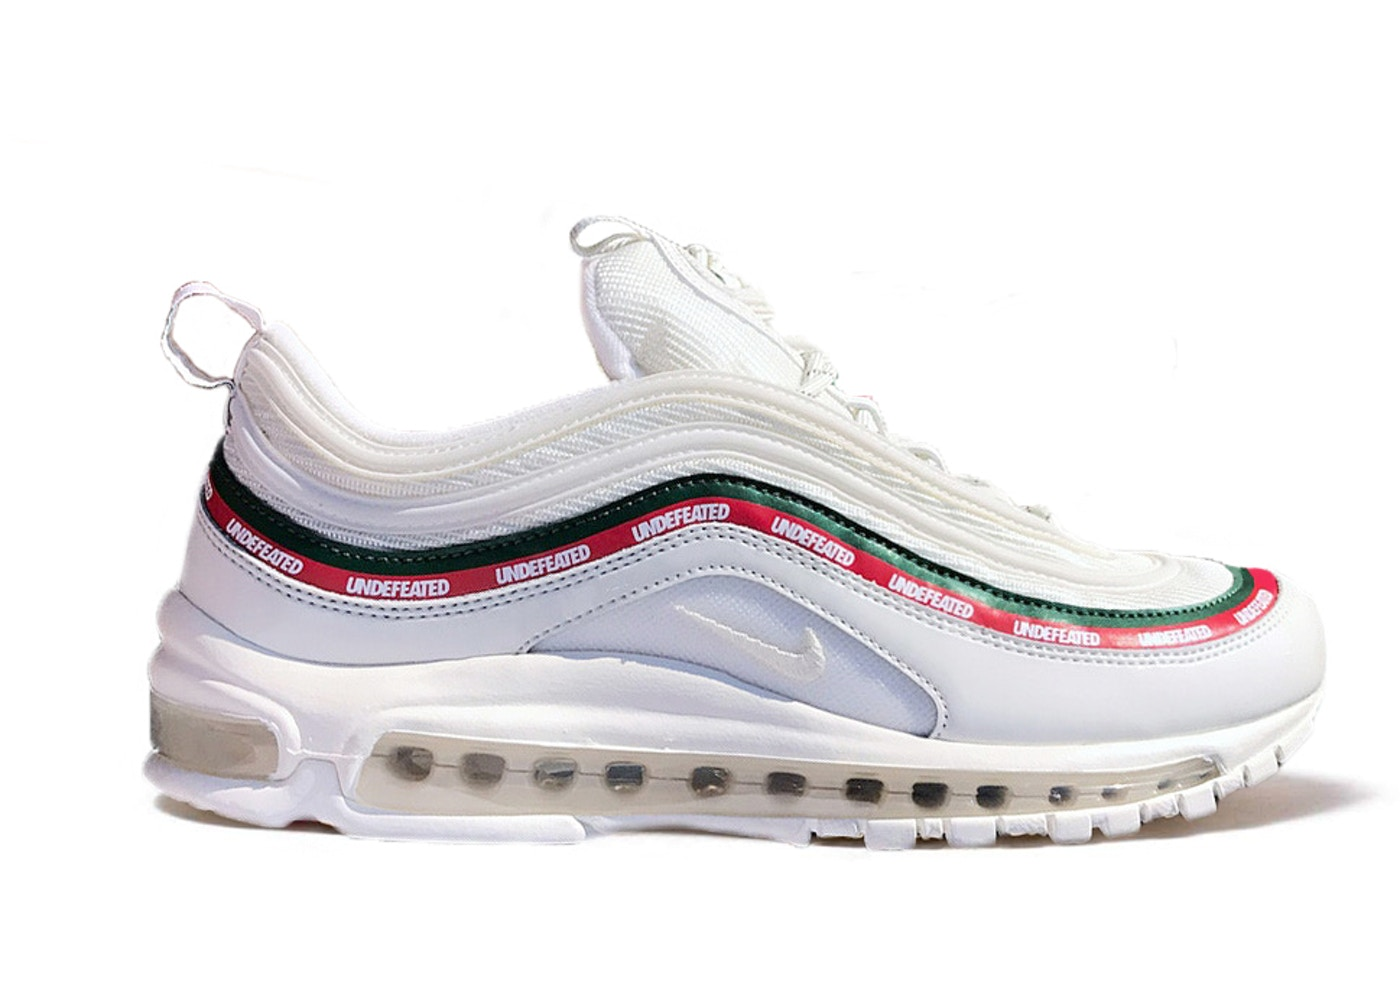 quality design 16ee4 6cdbd Air Max 97 UNDFTD White